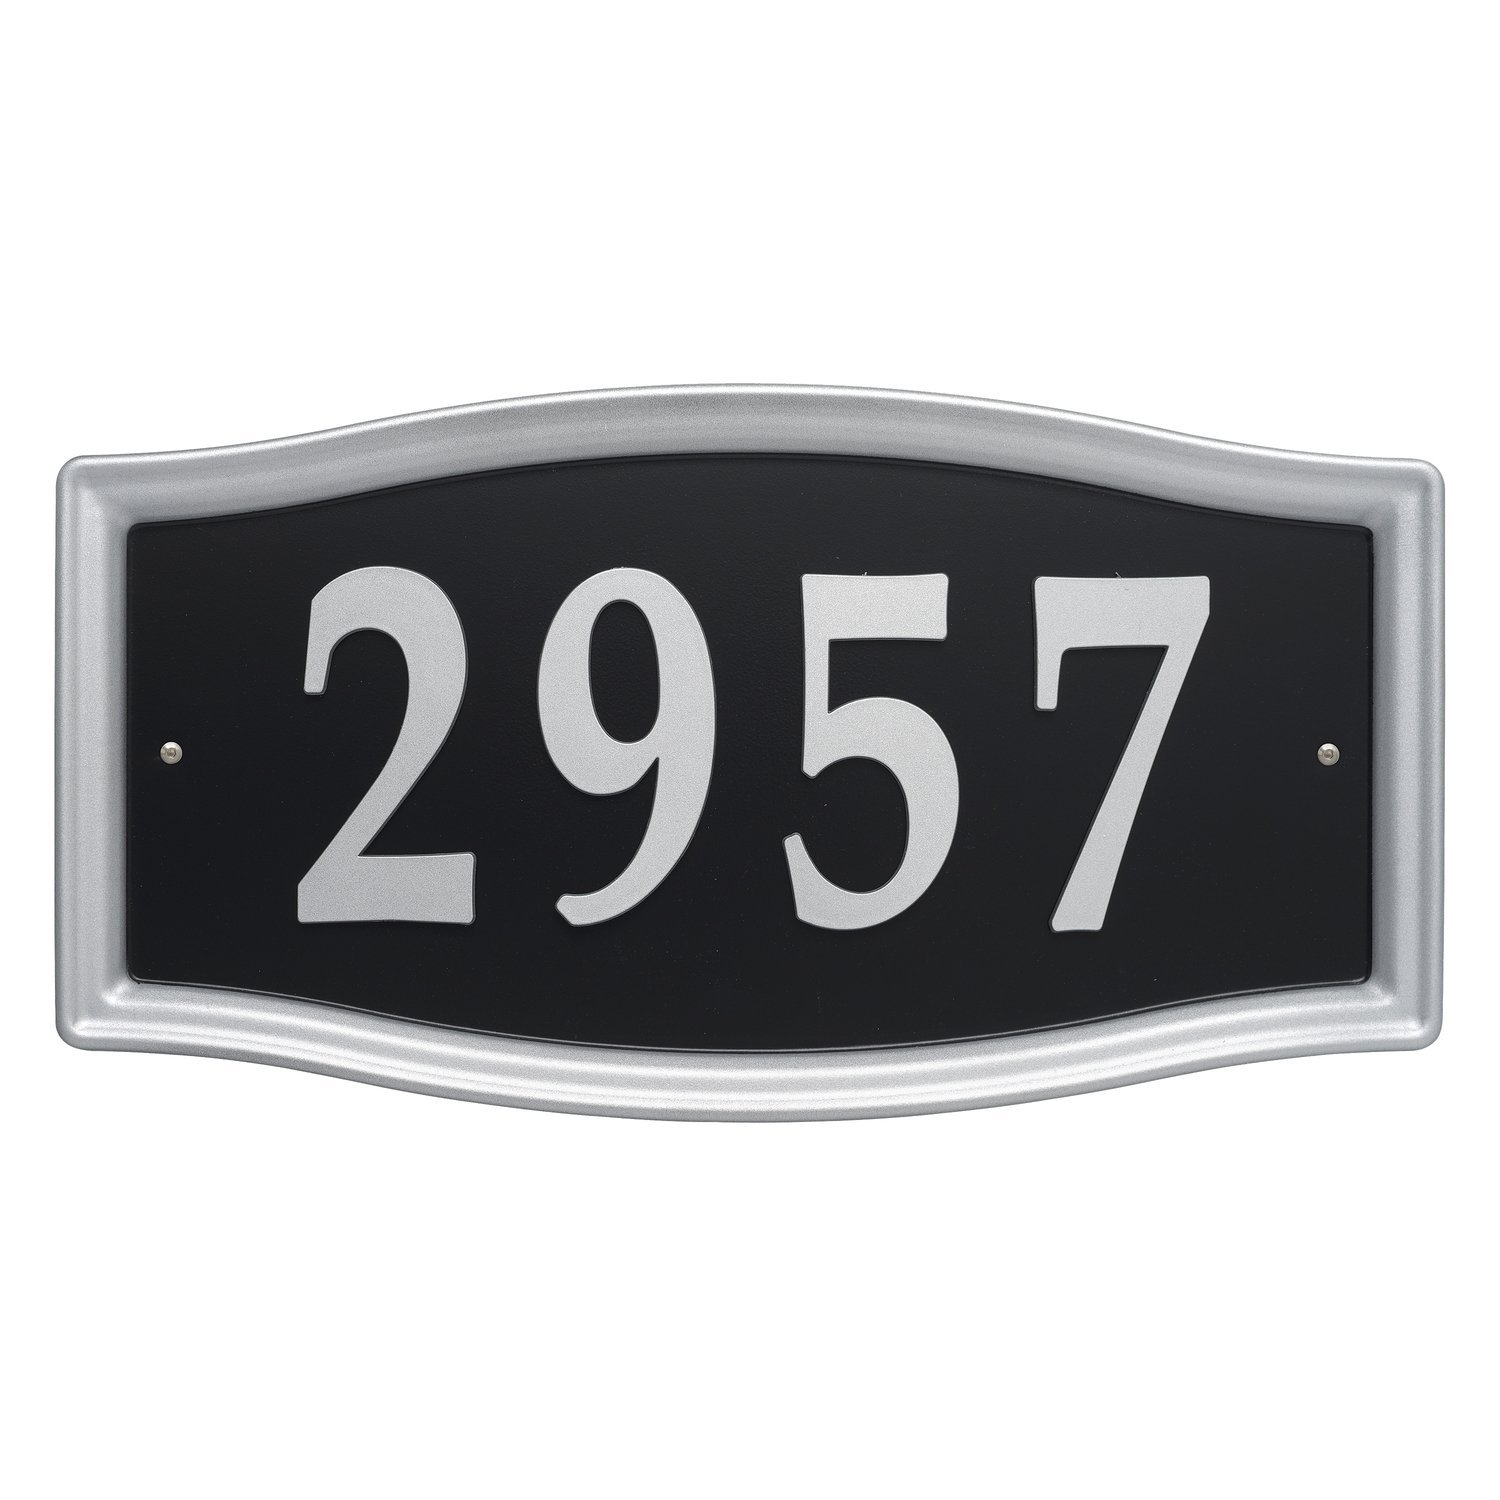 99ef899db05 Amazon.com   Whitehall Products Easy Street Address Sign Plaque ...